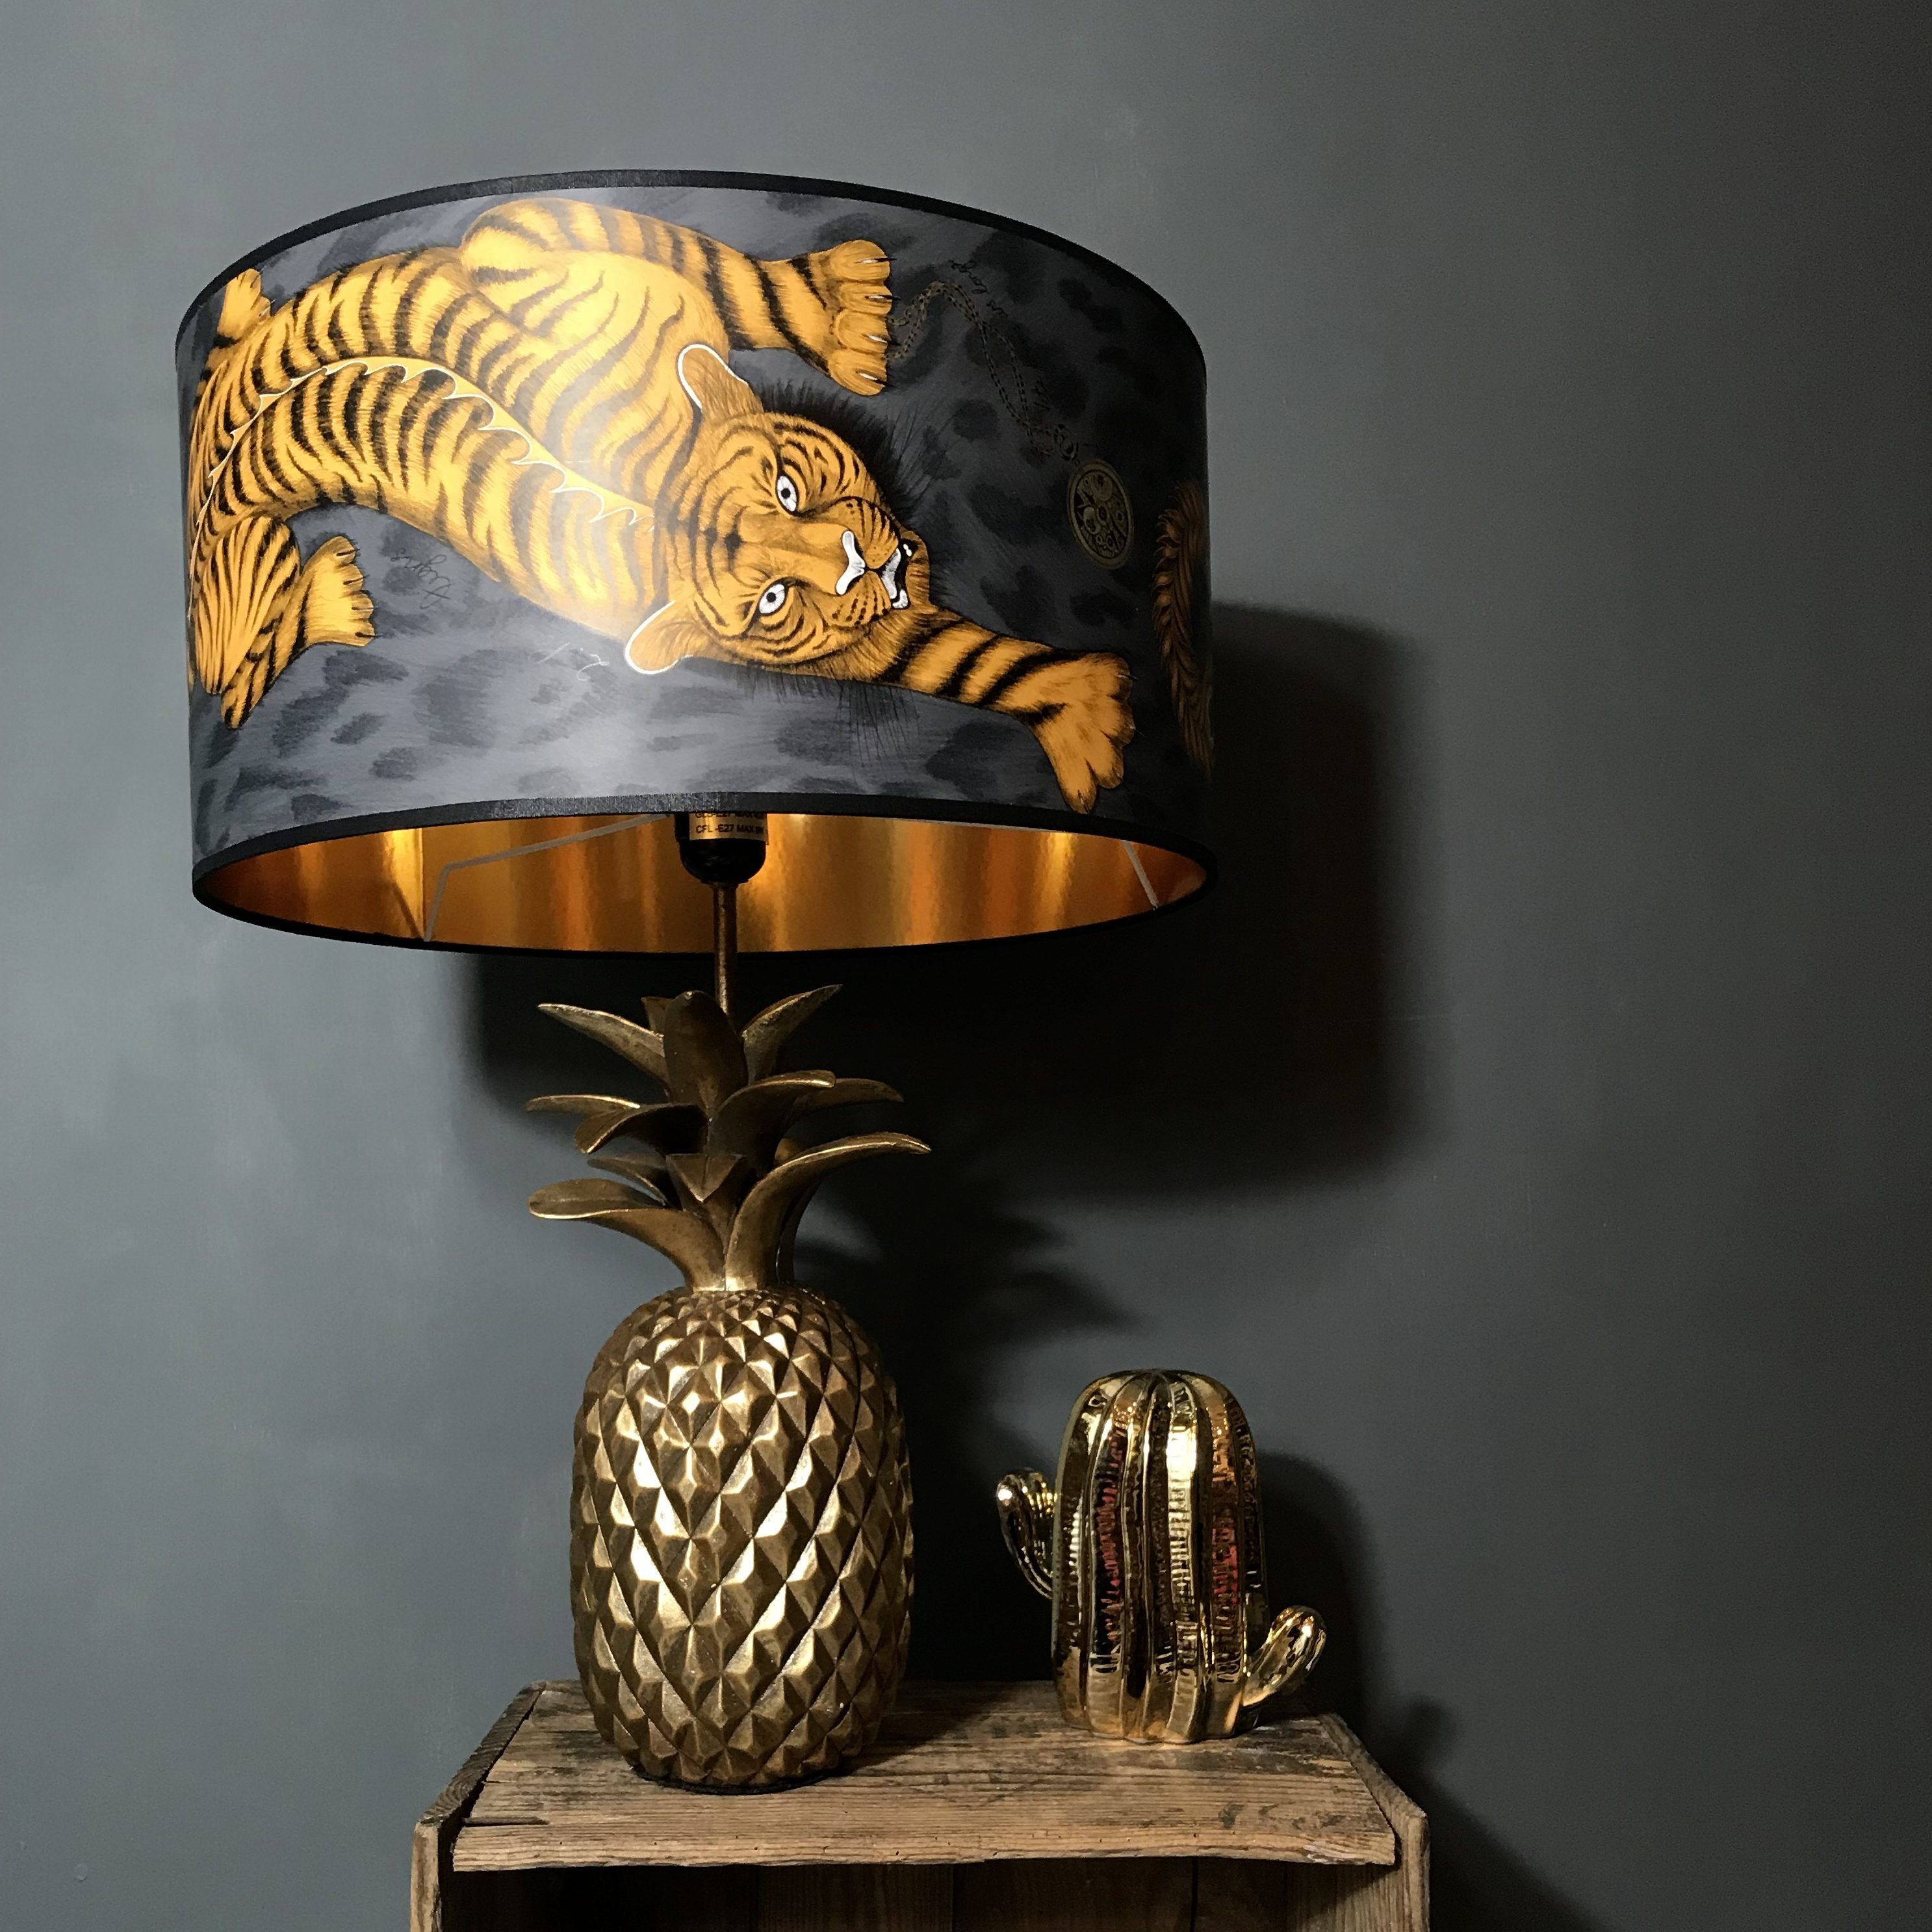 Enter The Enigmatic And Magical World Of Animalia The Newest Collection Of Wallpaper And Fabrics From The Outstanding Handmade Lampshades Gold Line Lampshades